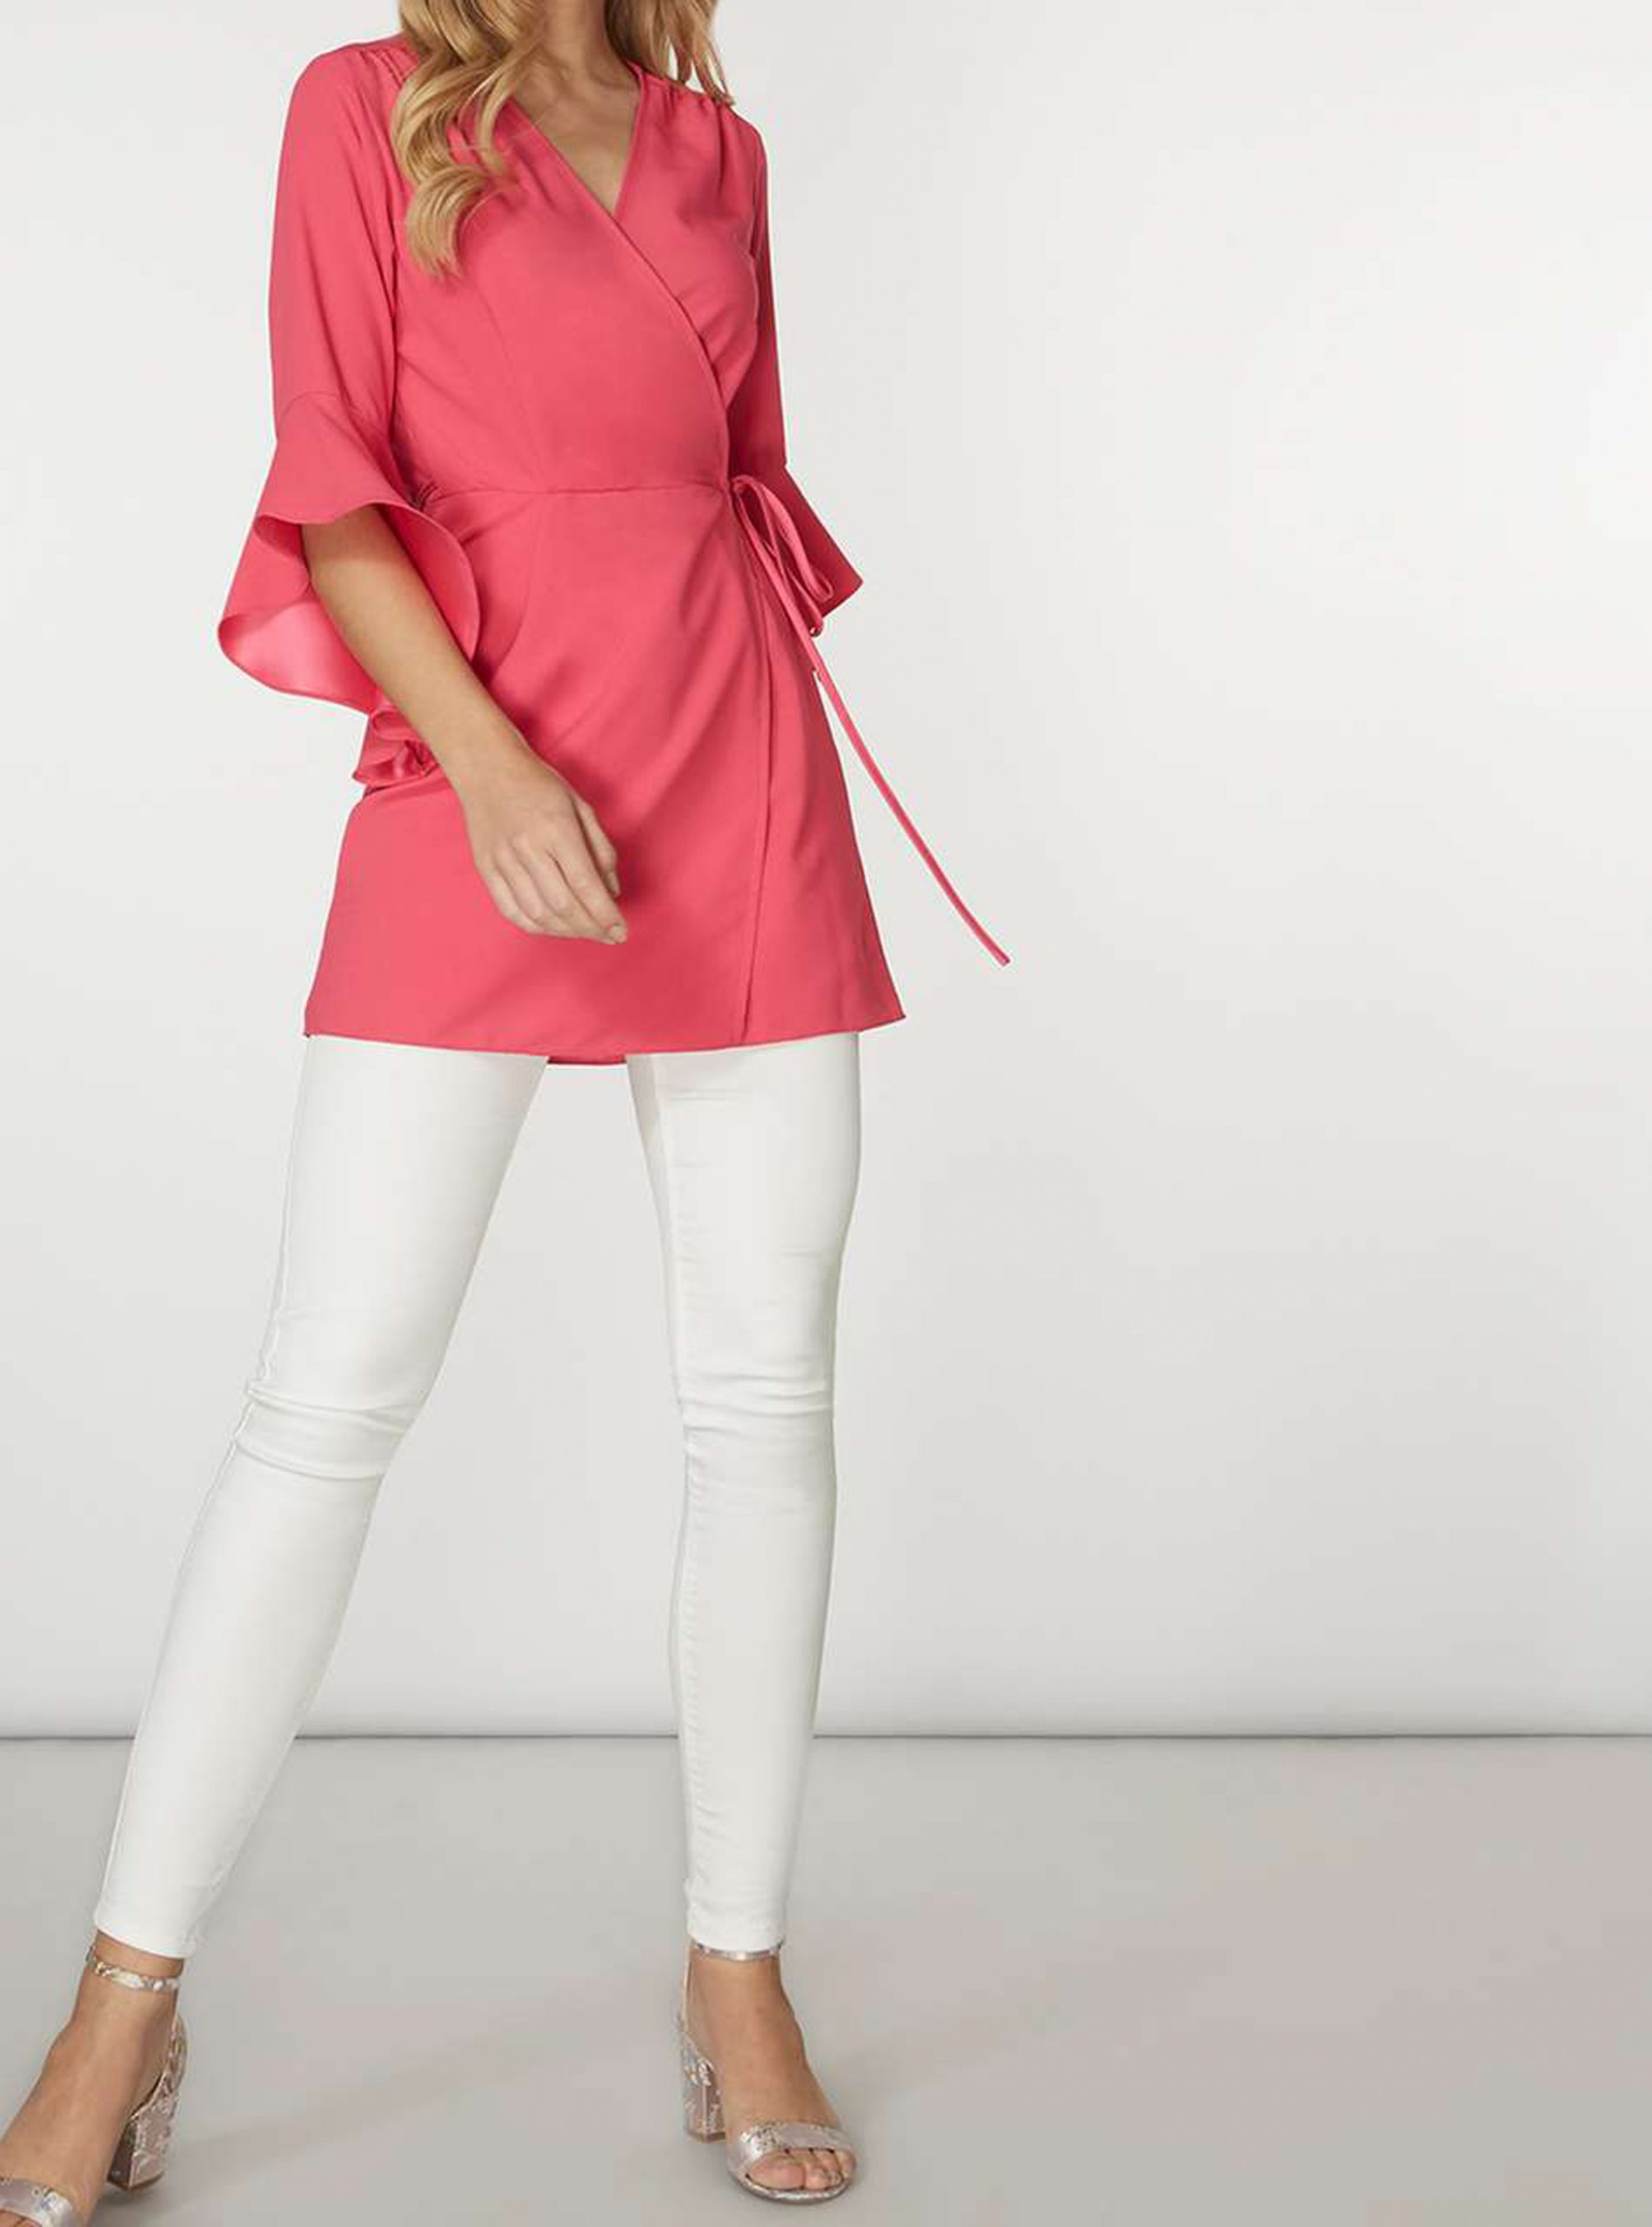 White Jeans Outfit Cover Image